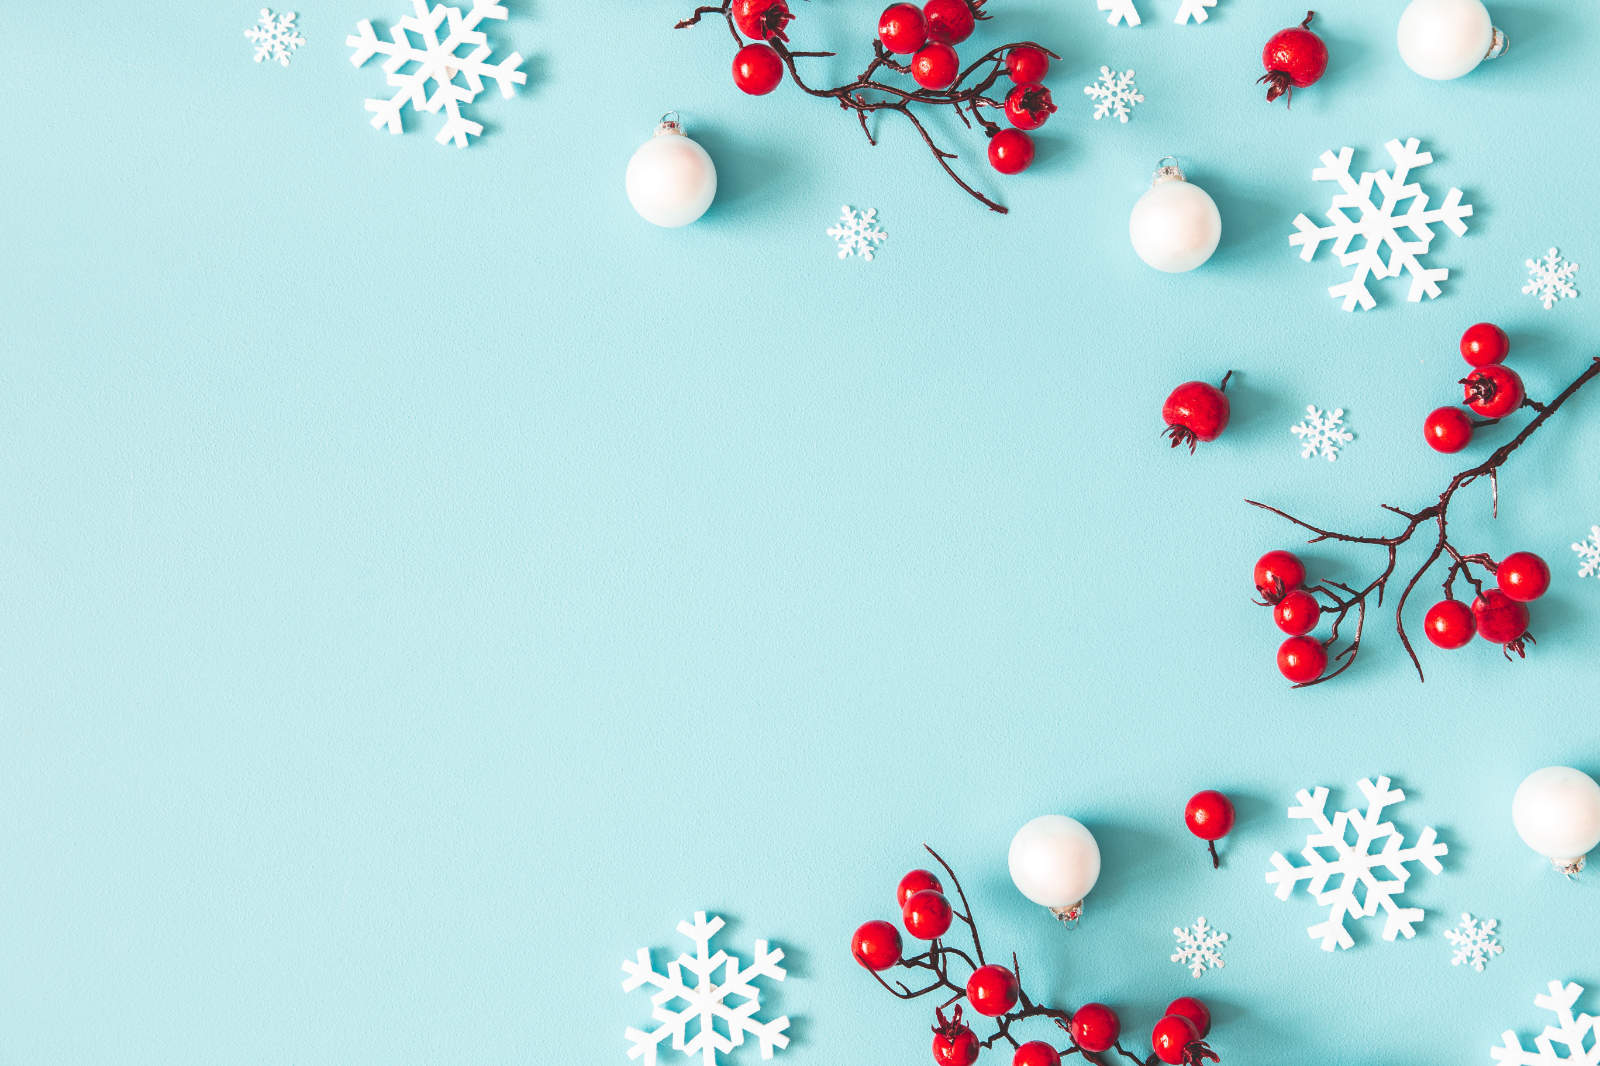 Christmas Snowflakes and red berries on blue background.